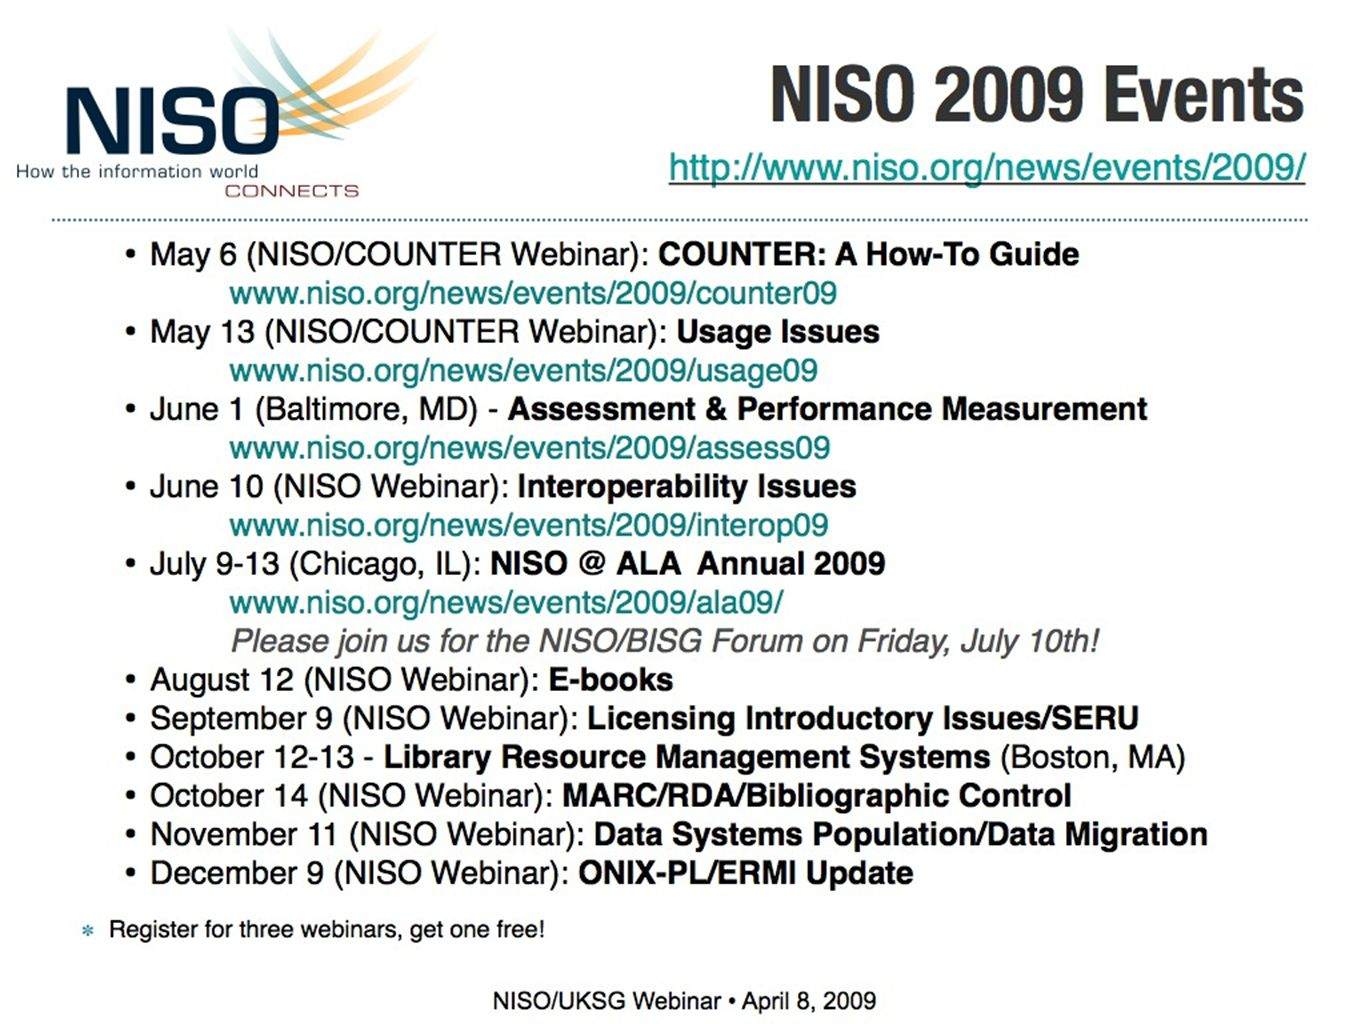 NISO 2009 Events     May 6 (NISO/COUNTER Webinar): COUNTER: A How-To Guide     May 13 (NISO/COUNTER Webinar): Usage Issues     June 1 (Baltimore, MD) - Assessment & Performance Measurement   June 10 (NISO Webinar): Interoperability Issues     July 9-13 (Chicago, IL): ALA Annual Please join us for the NISO/BISG Forum on Friday, July 10th.